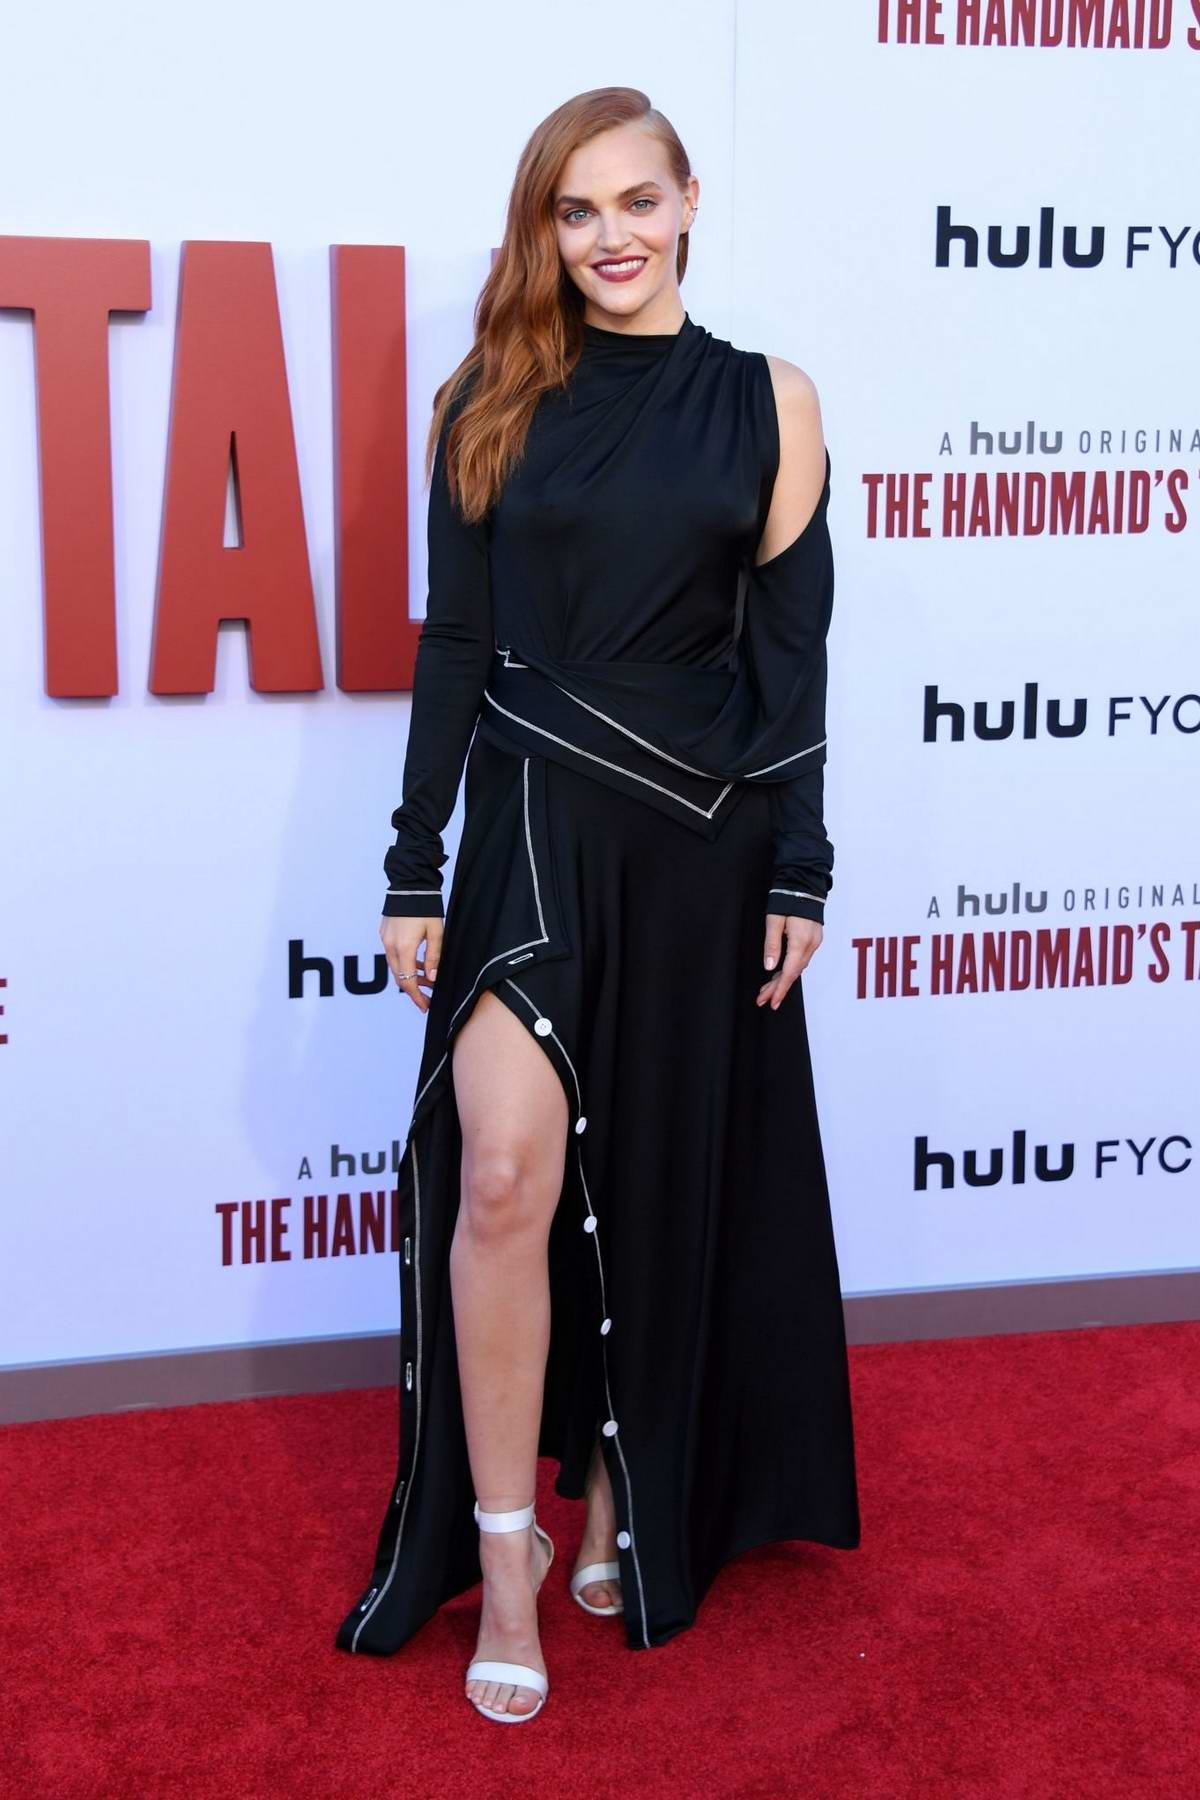 Madeline Brewer attends 'The Handmaid's Tale' Season 3 Finale at Regency Village Theatre in Westwood, California